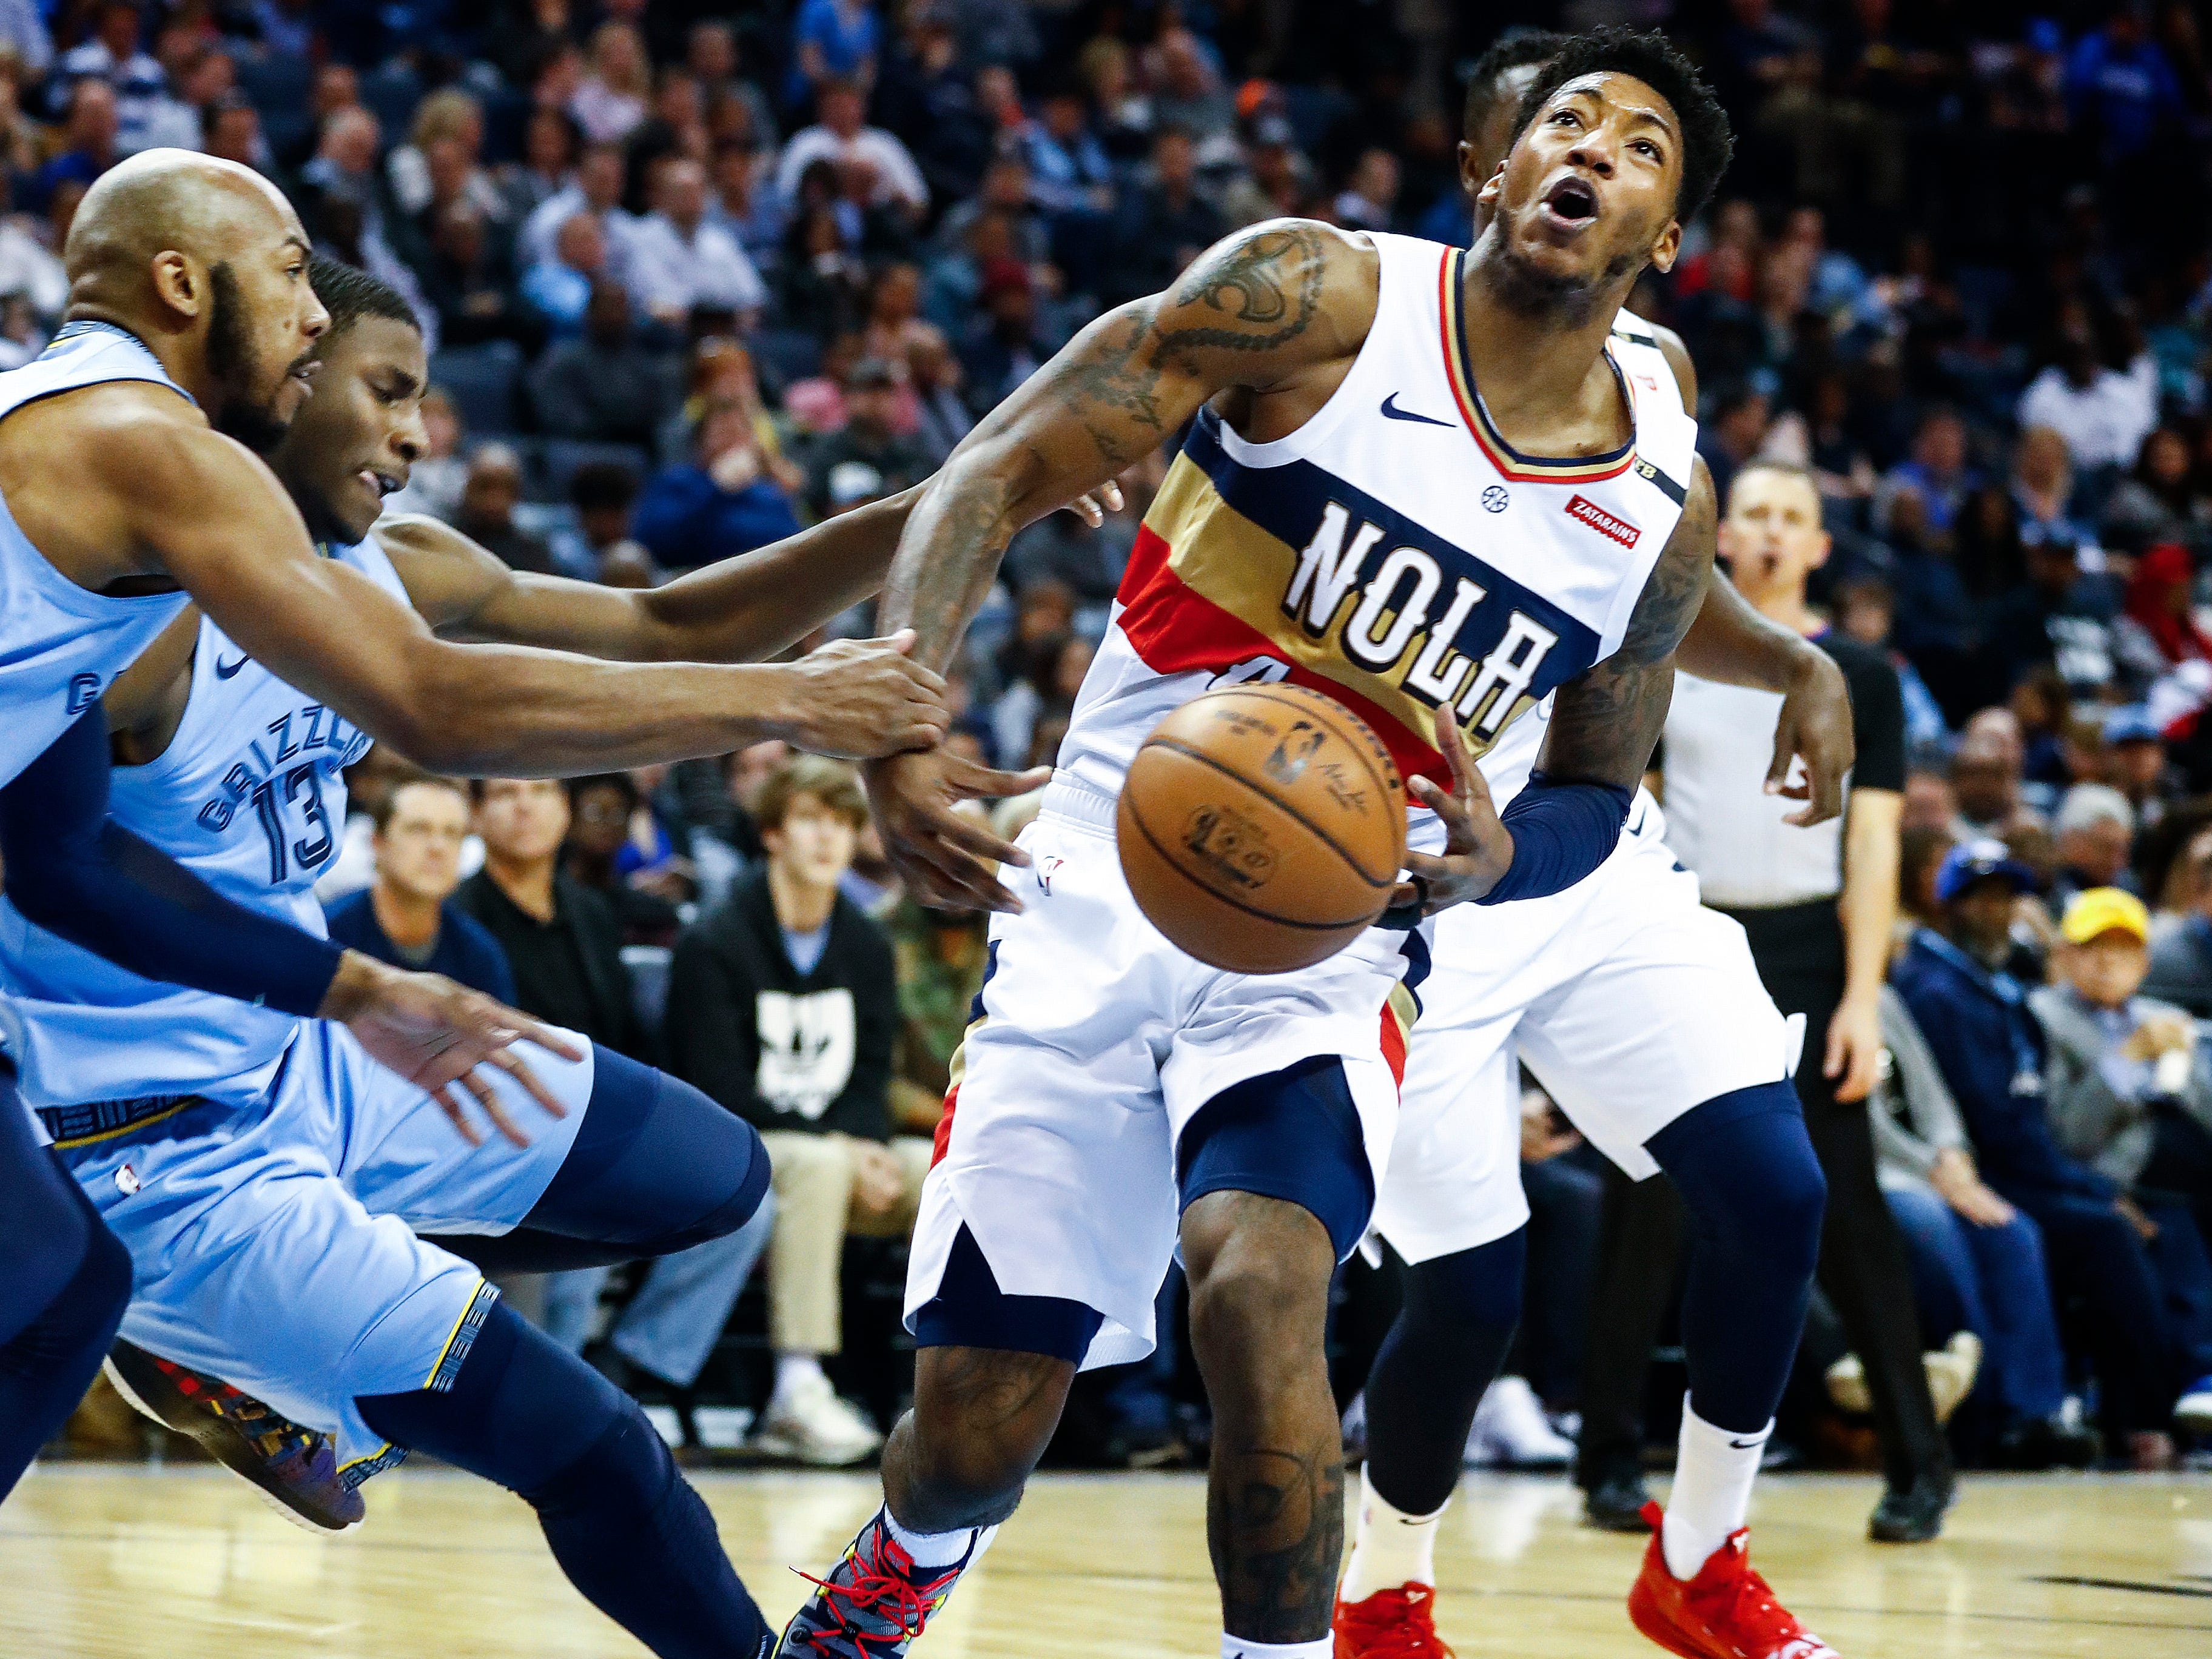 New Orleans Pelicans guard Elfrid Payton (right) is fouled while driving the lane against Memphis Grizzlies defenders Jevon Carter (left) and Jaren Jackson Jr. (middle) during action at the FedExForum in Memphis, Tenn., Monday, January 21, 2019.